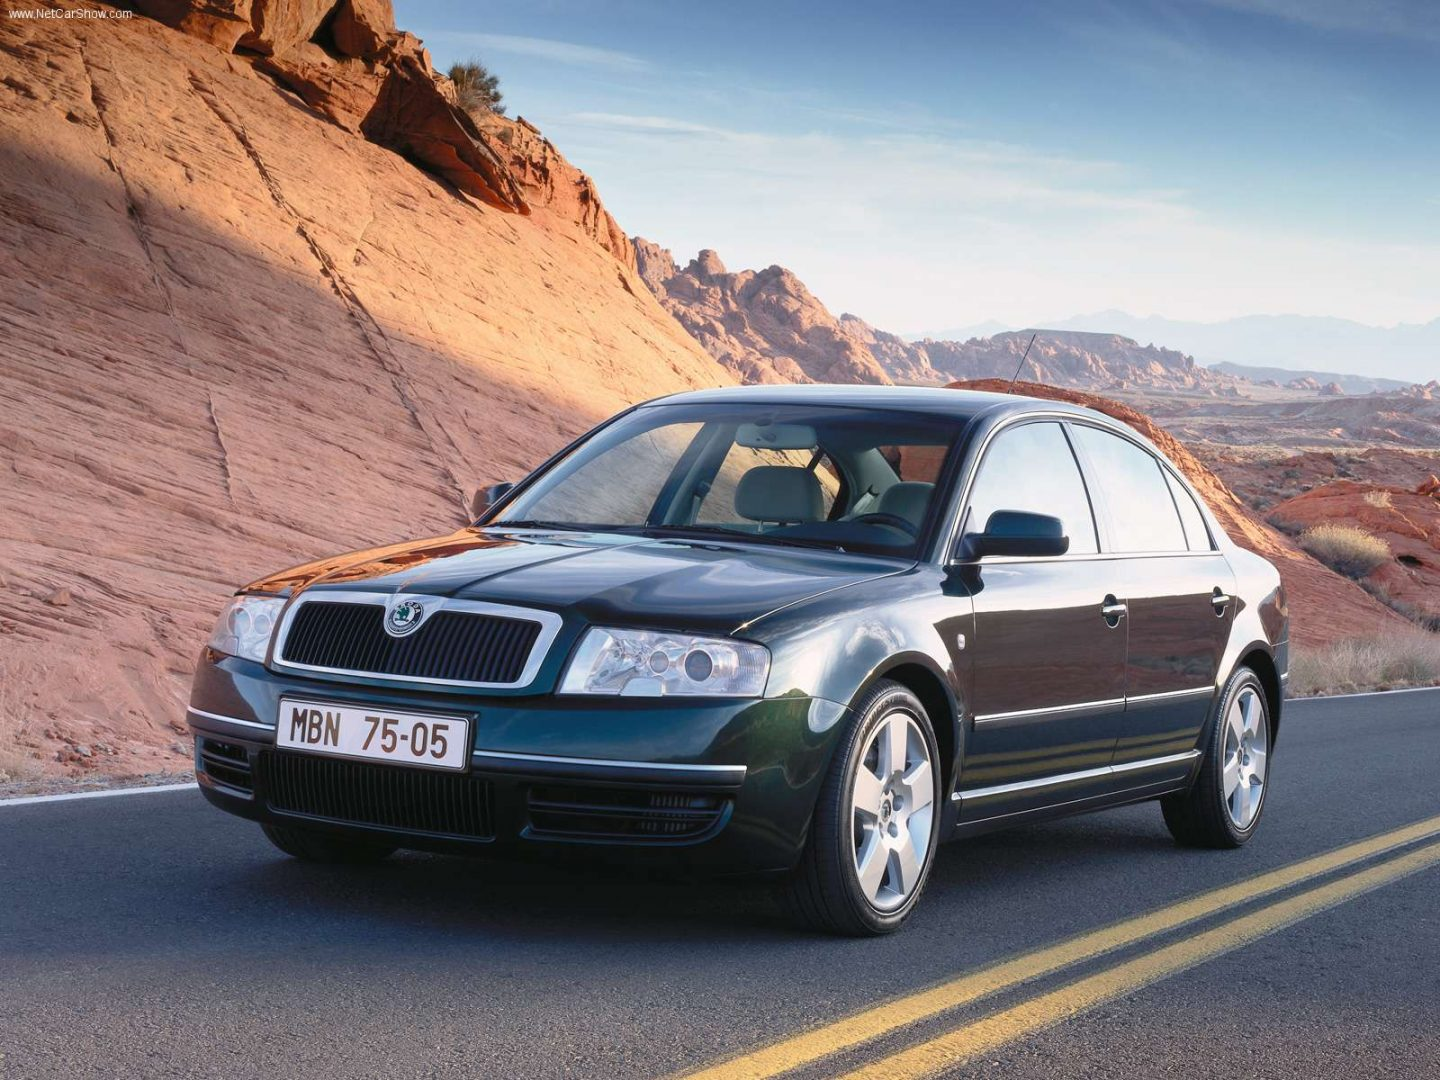 ŠKODA SUPERB - 2001